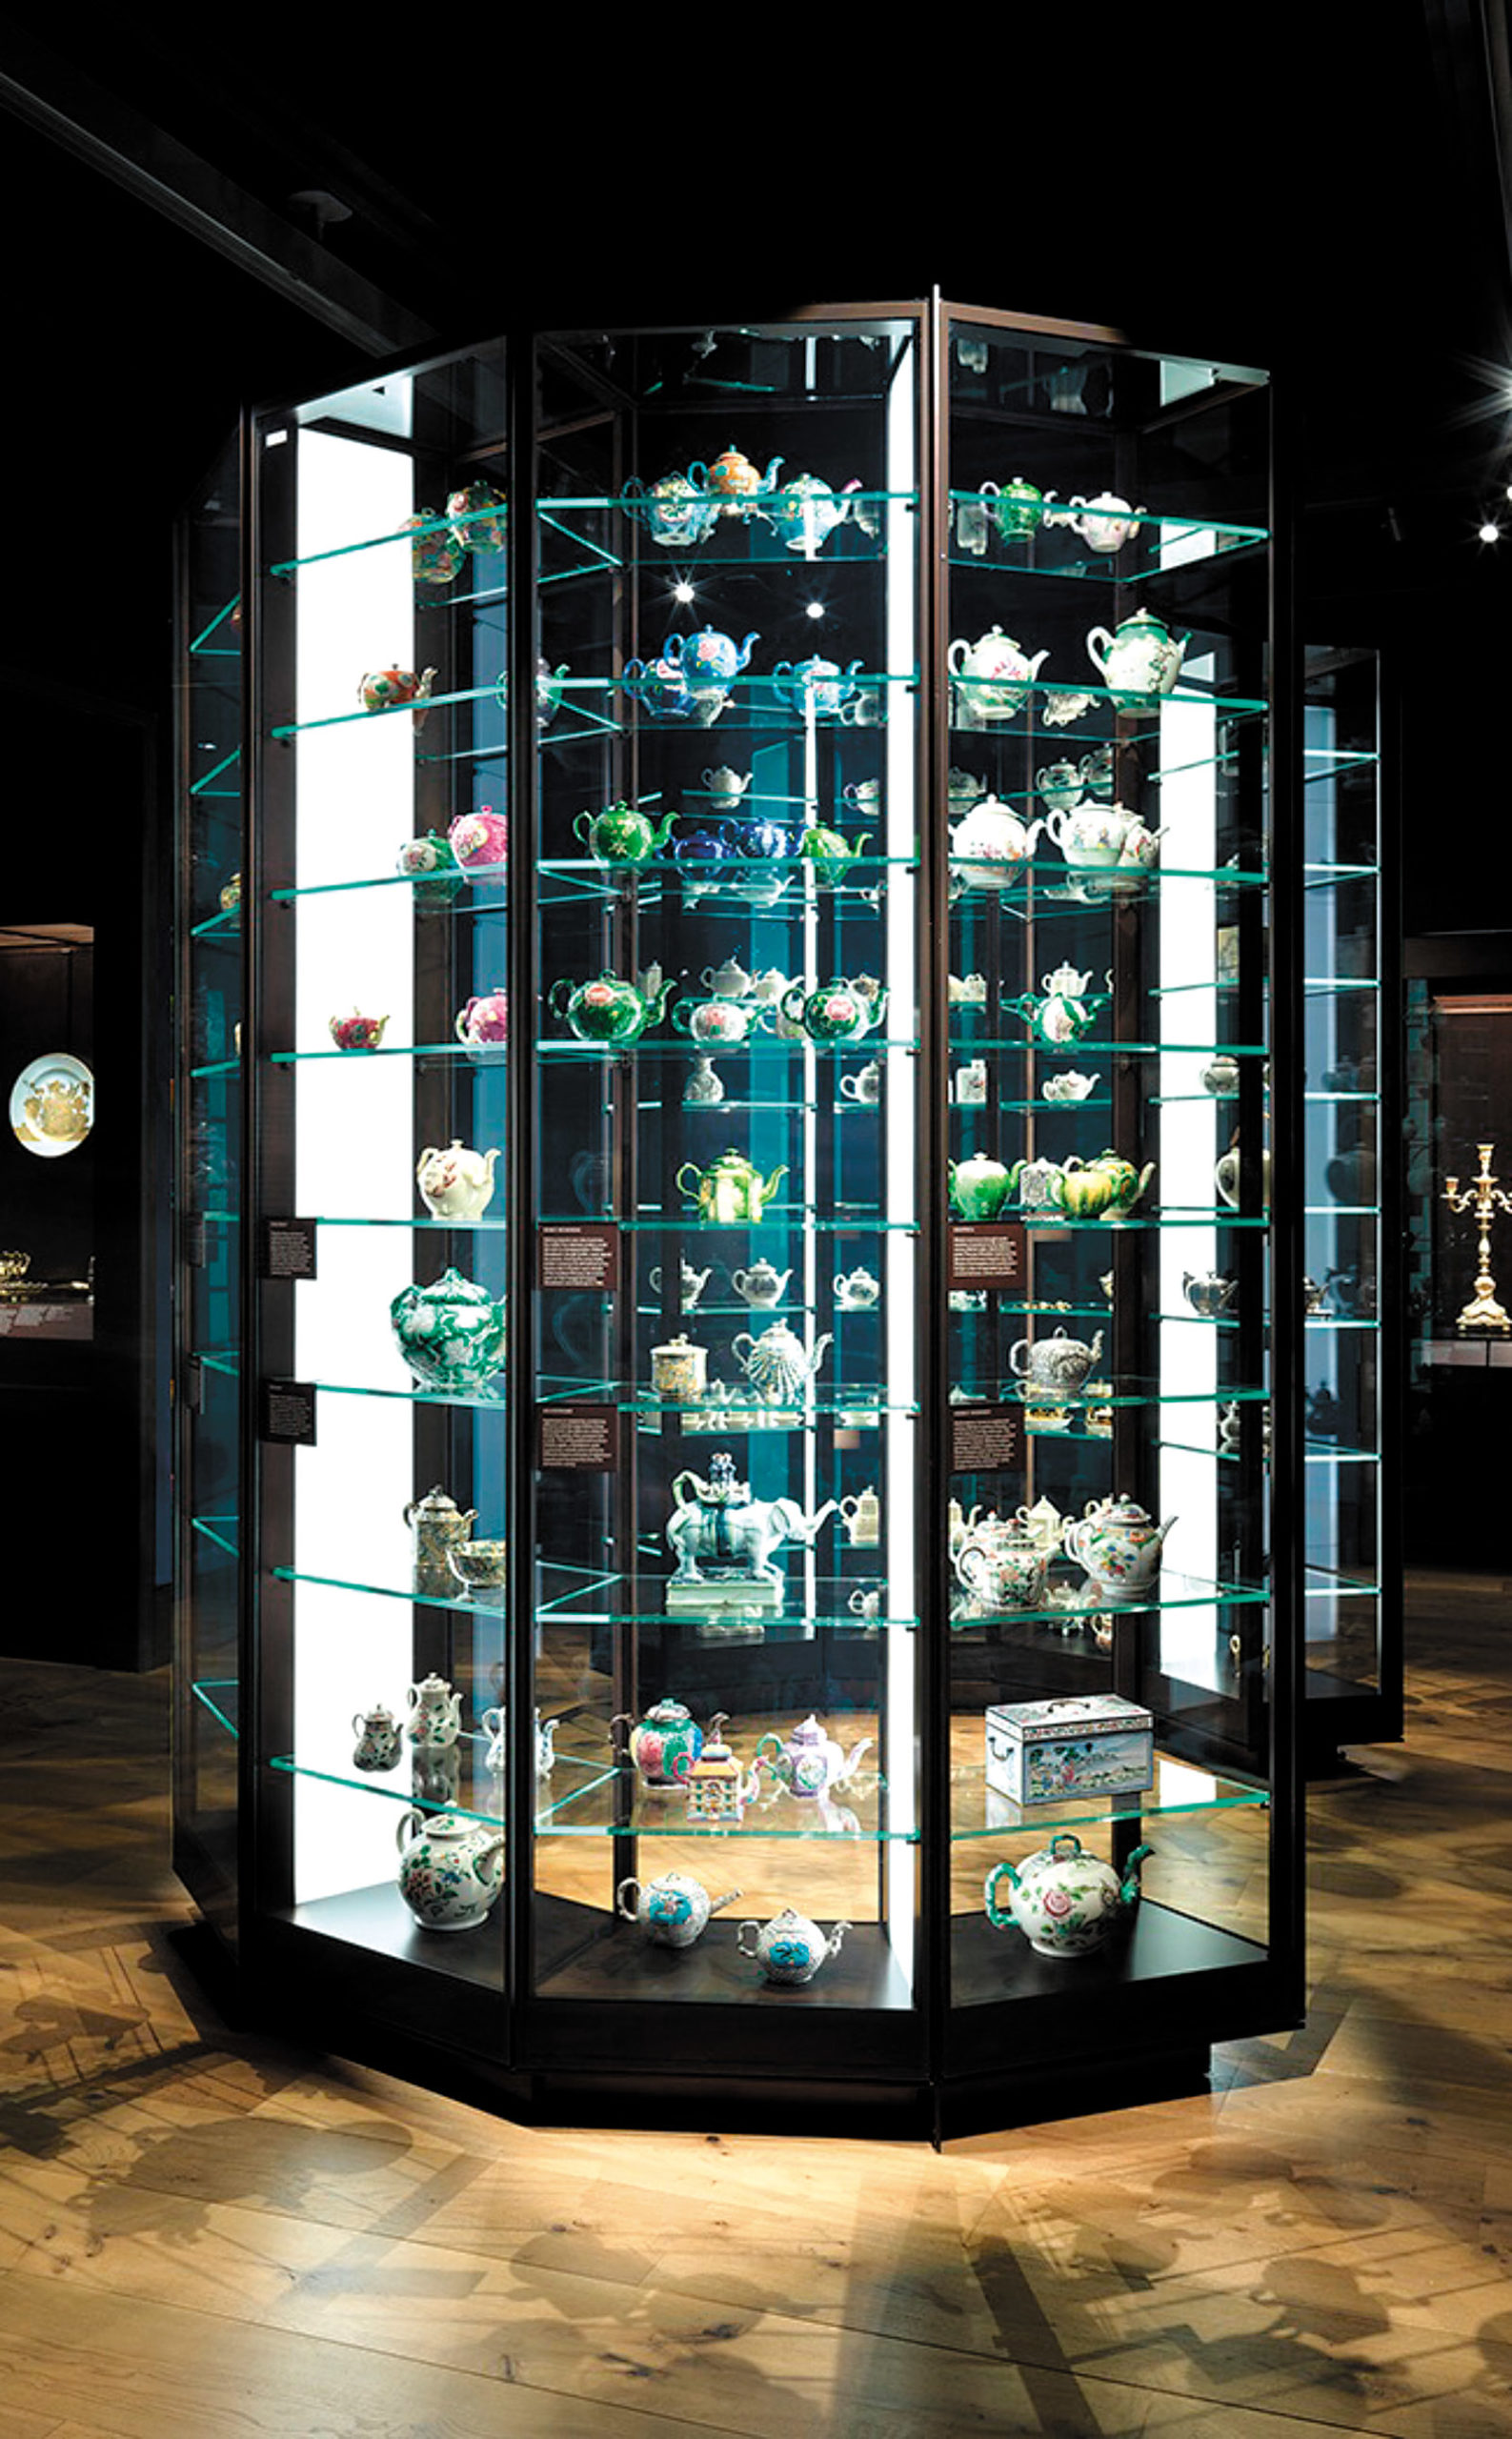 The 'Tea, Trade, and Empire' room in the British Galleries